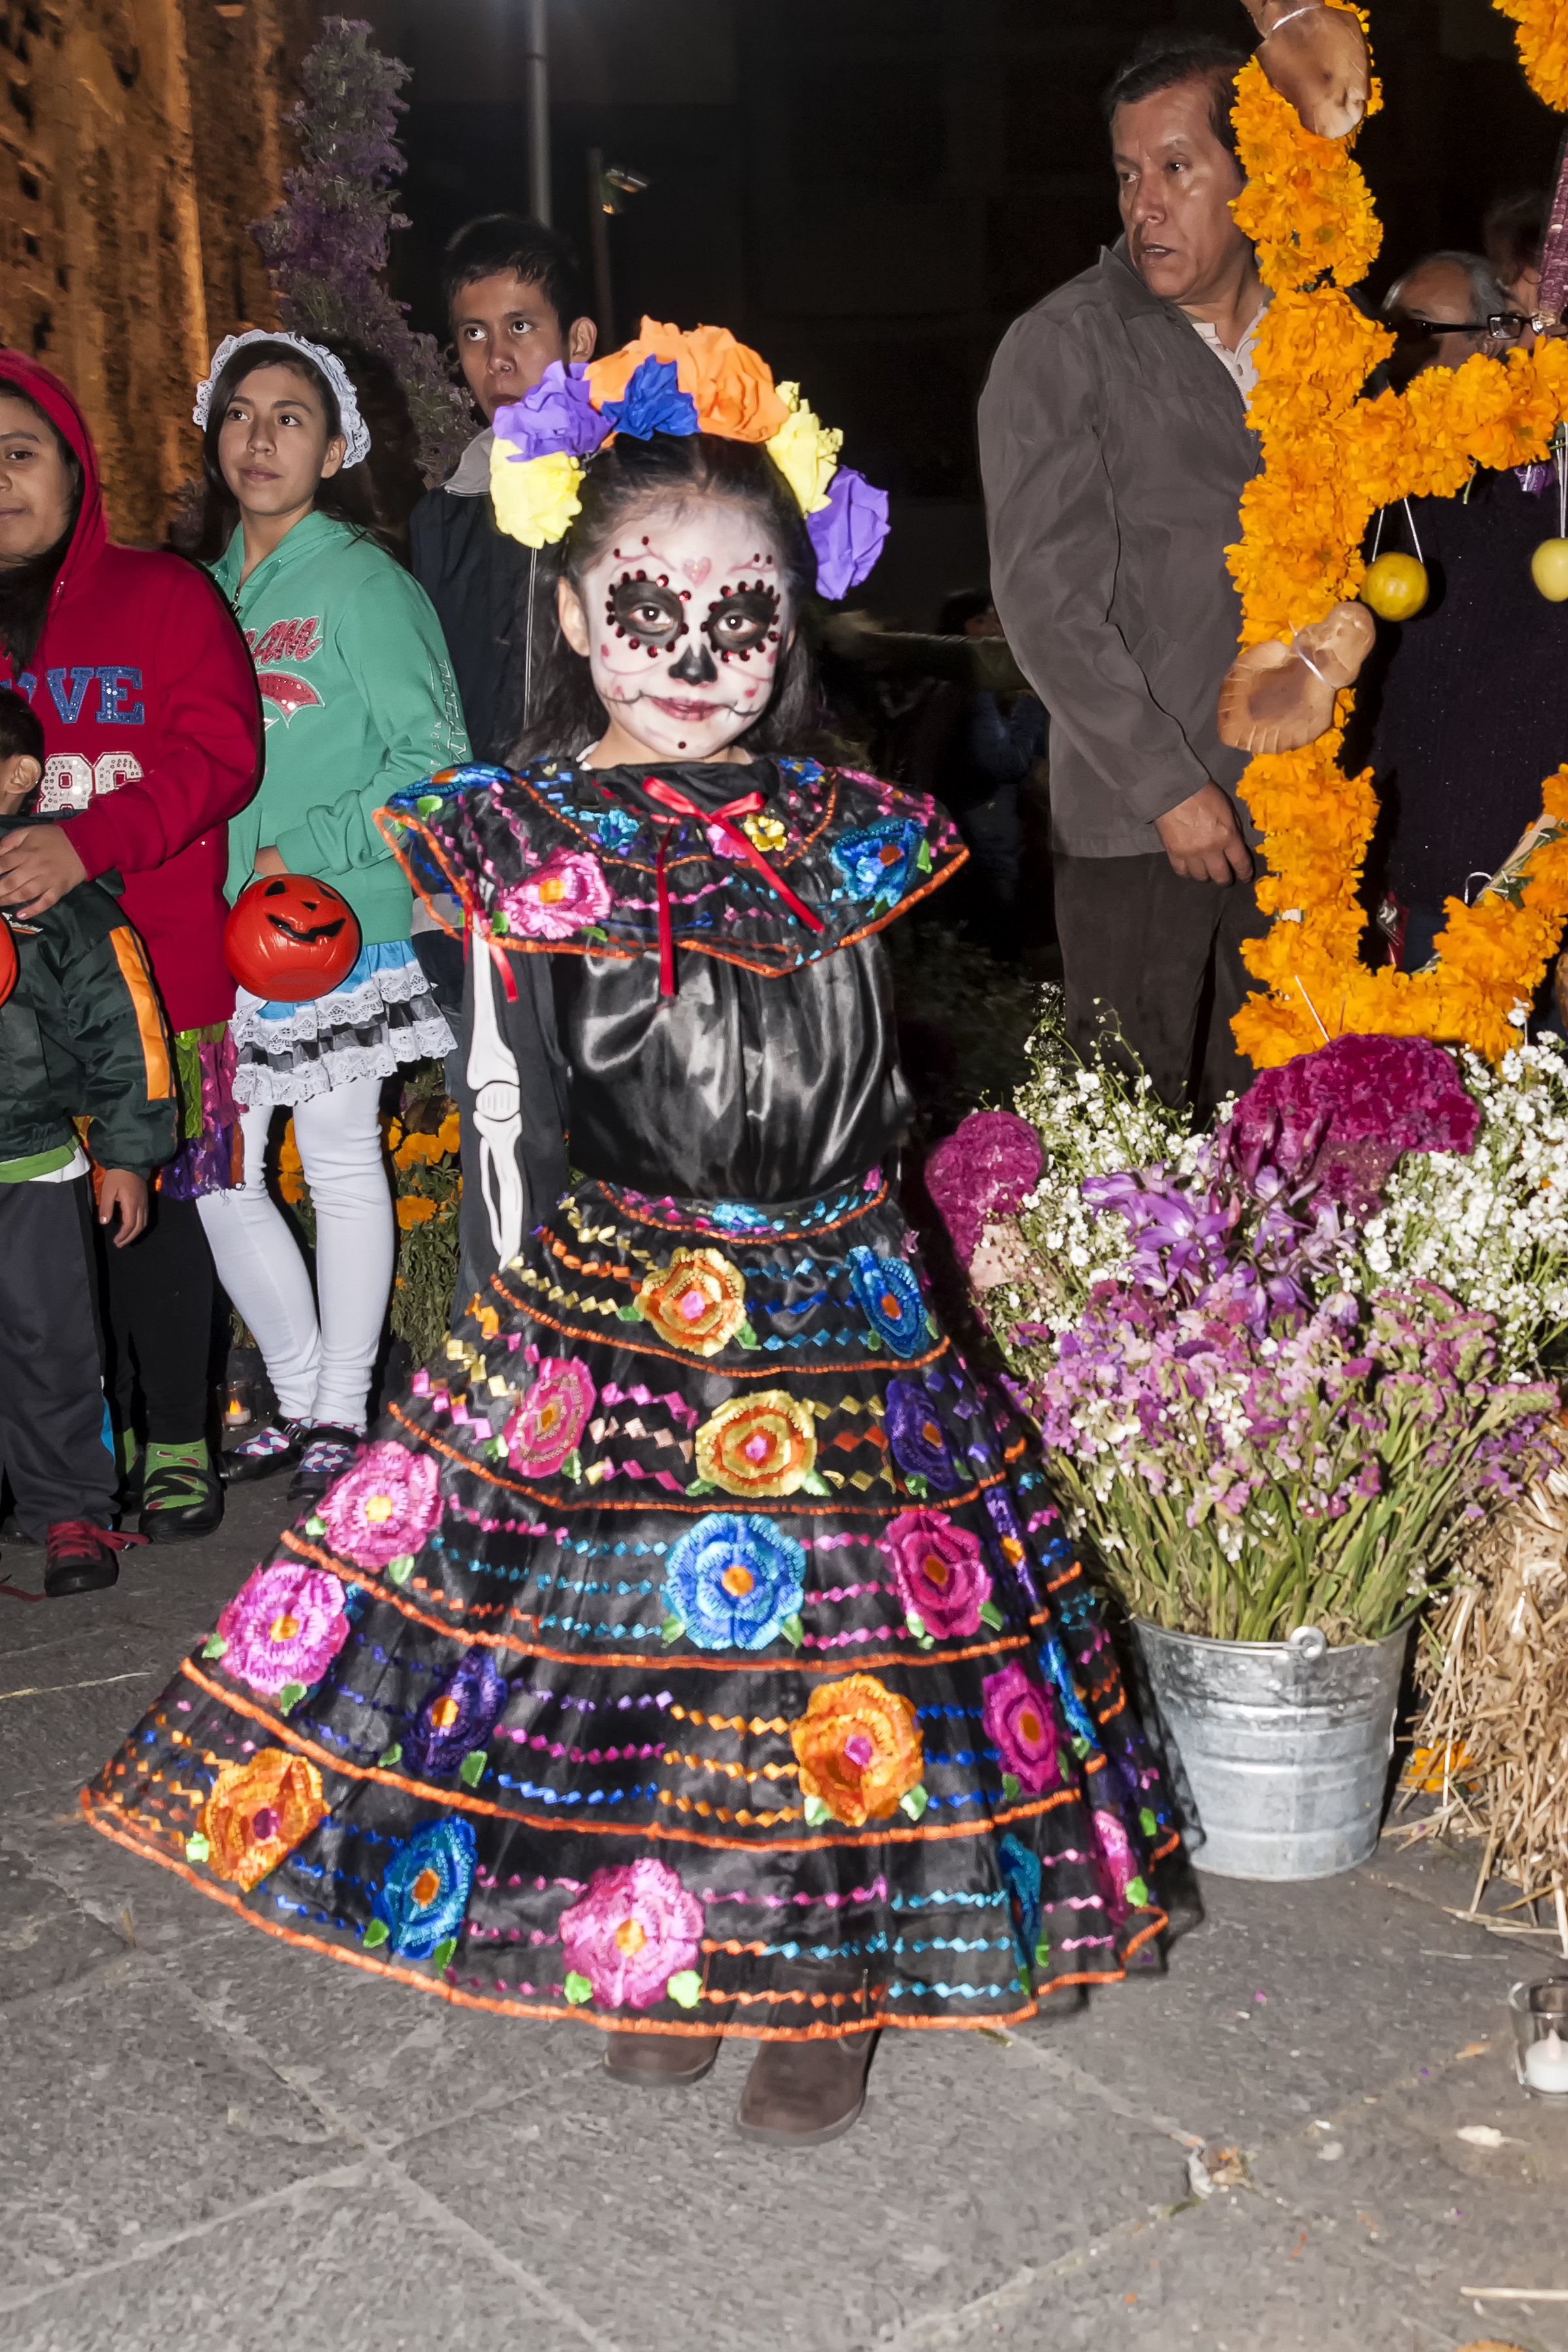 Fileniña Catrina 9jpg Wikimedia Commons